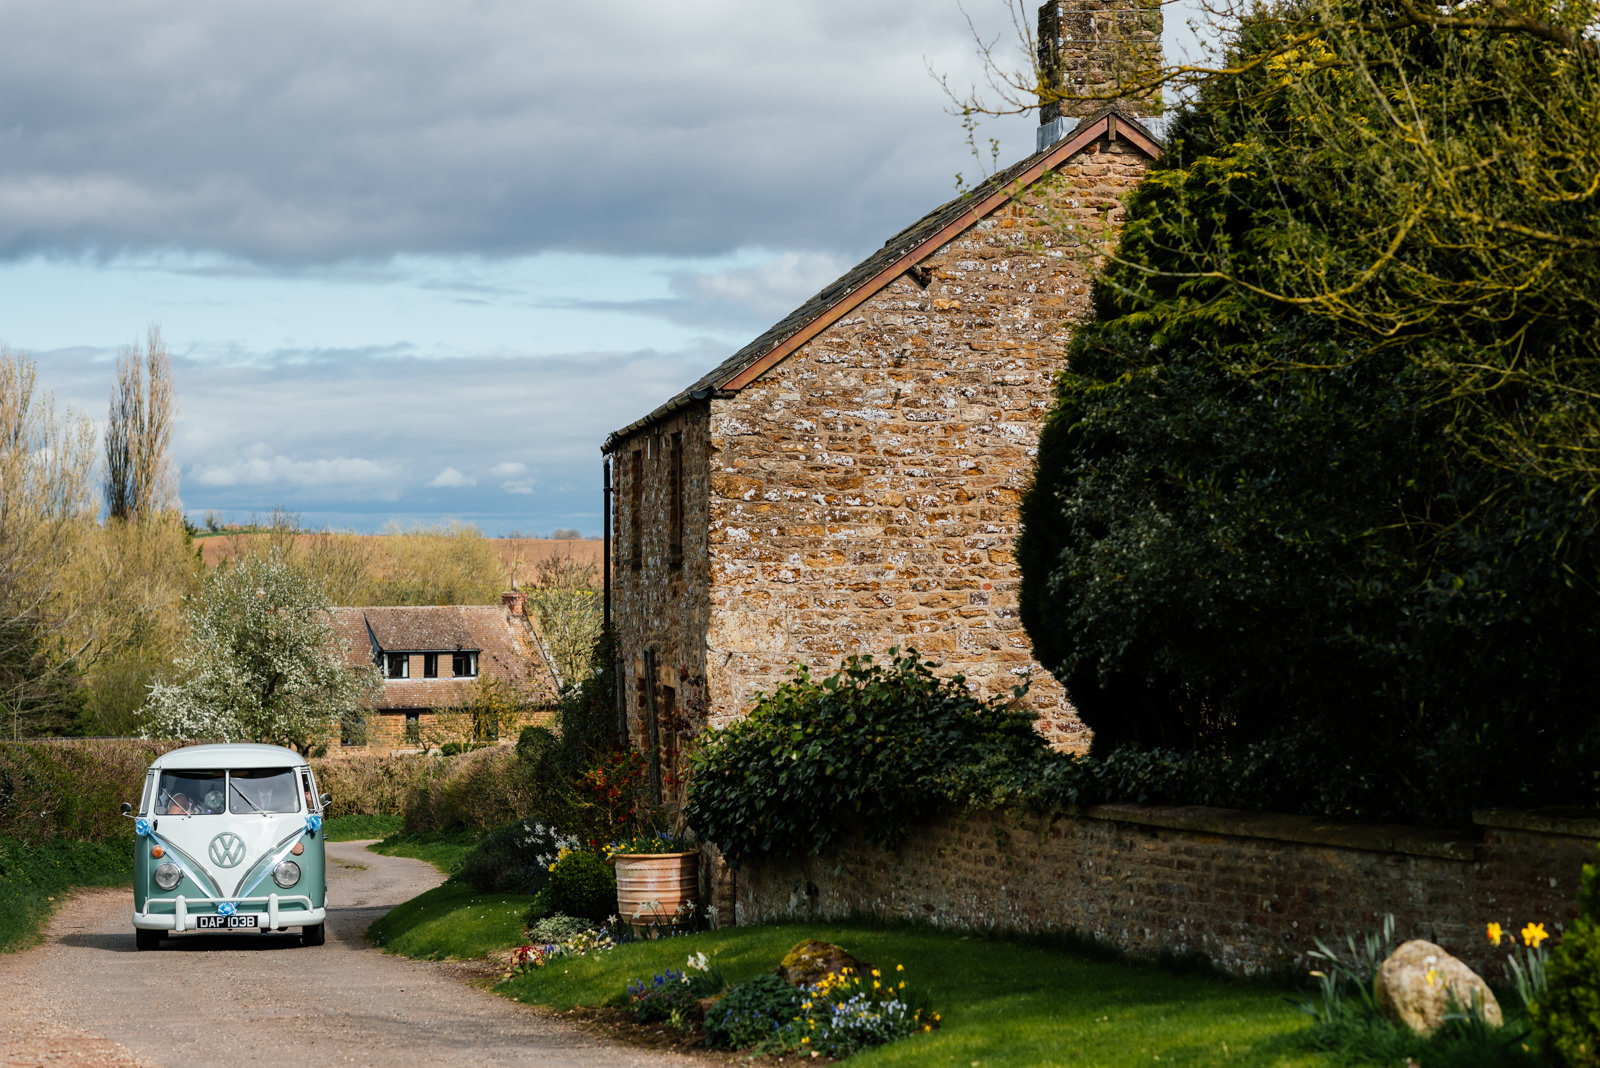 camper van arriving at church with bride and bridesmaids